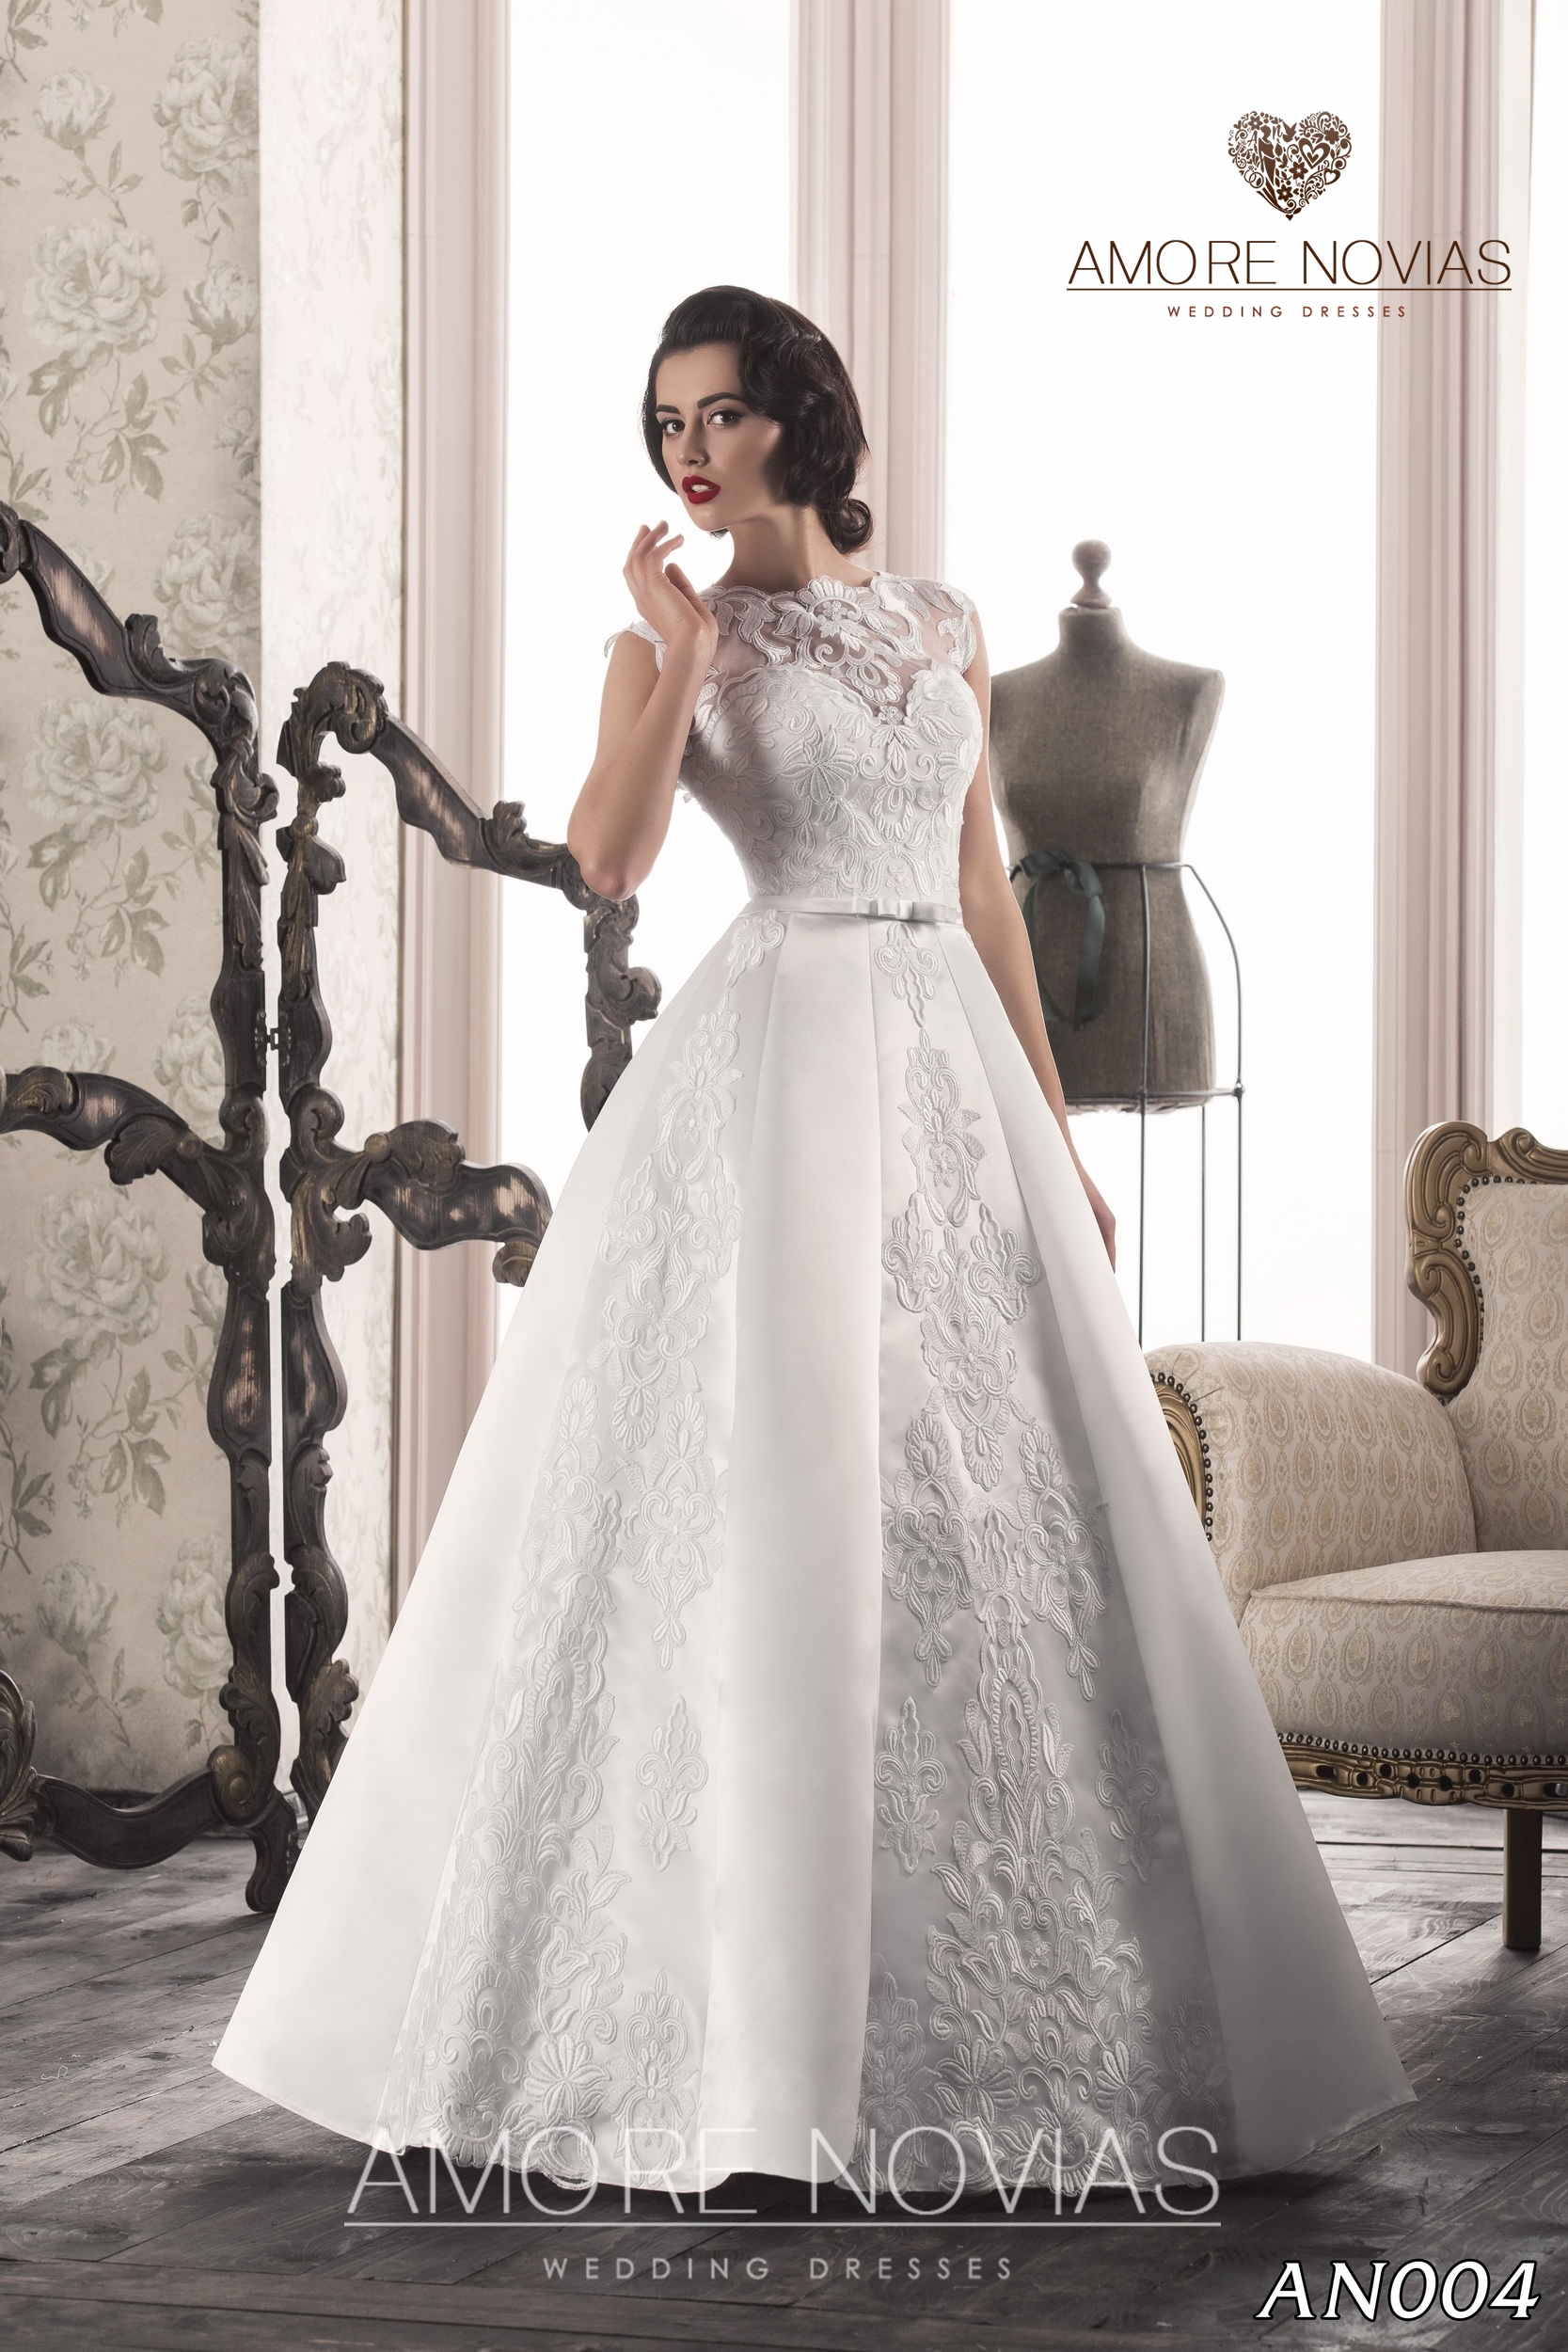 https://amore-novias.com/images/stories/virtuemart/product/an004.jpg